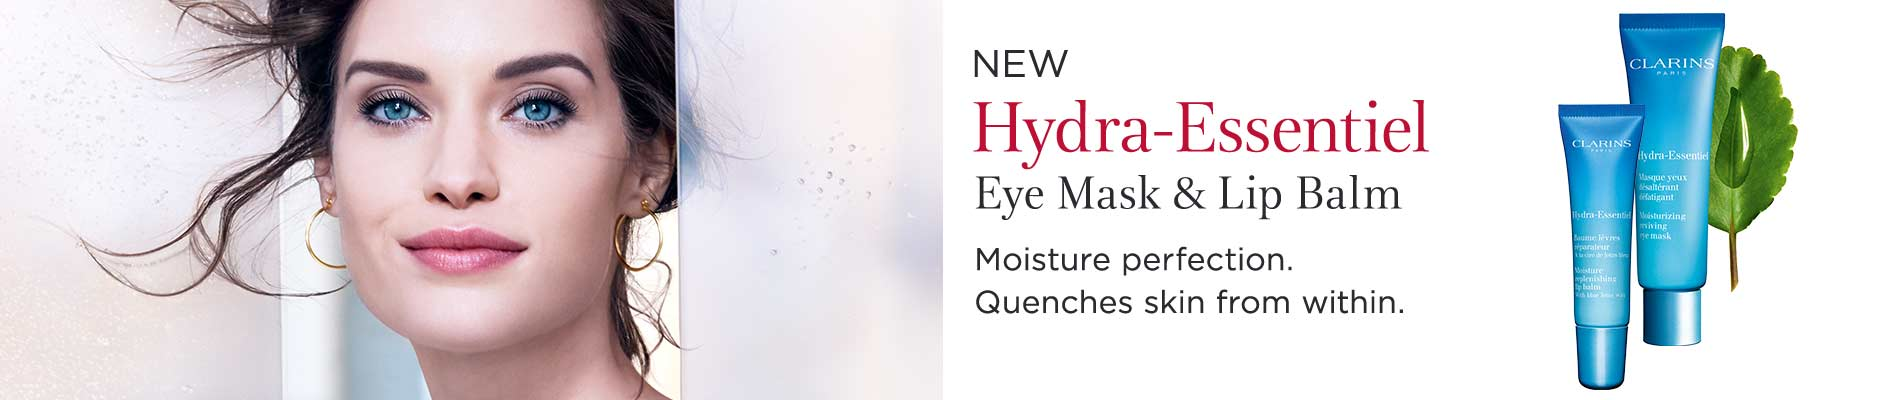 New Hydra-Essentiel eye mask & lip balm. Moisture perfection. Quenches skin from within.